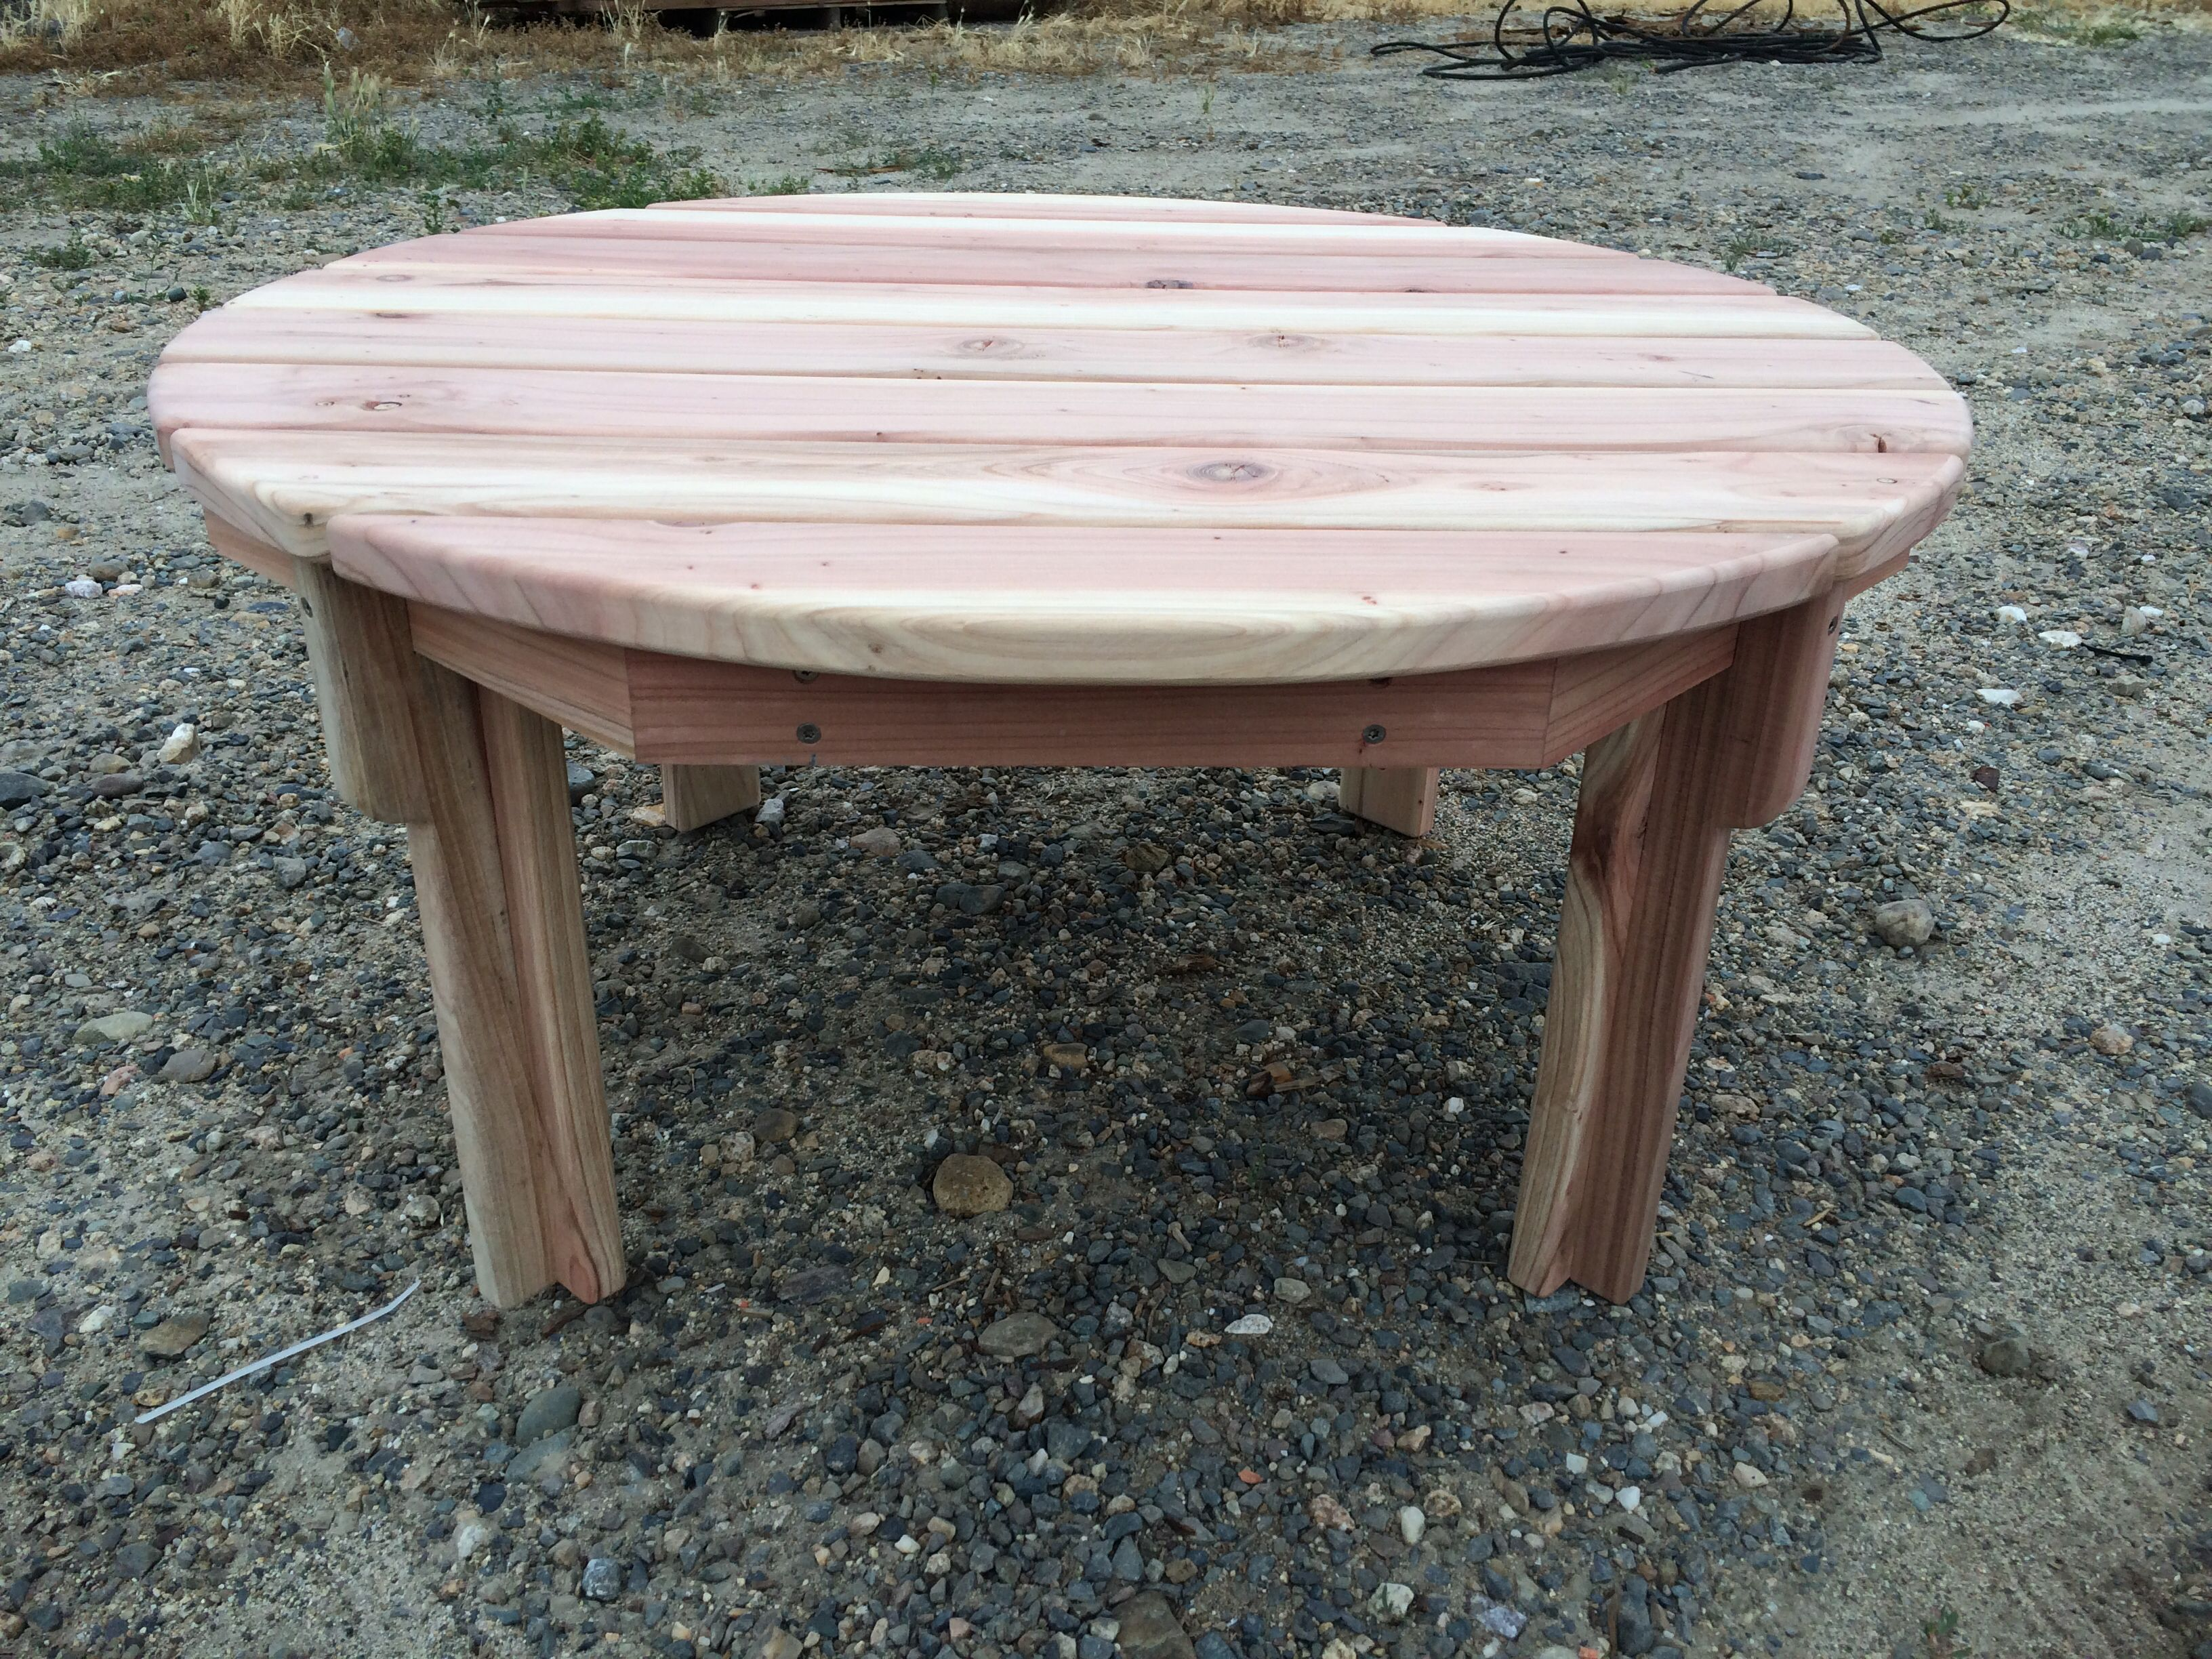 Knotthead Custom Sawing 36 Round Redwood Adirondack Coffee Table Different View Of Tge Legs And Corbels Adirondack Furniture Types Of Wood Outdoor Tables [ 2448 x 3264 Pixel ]